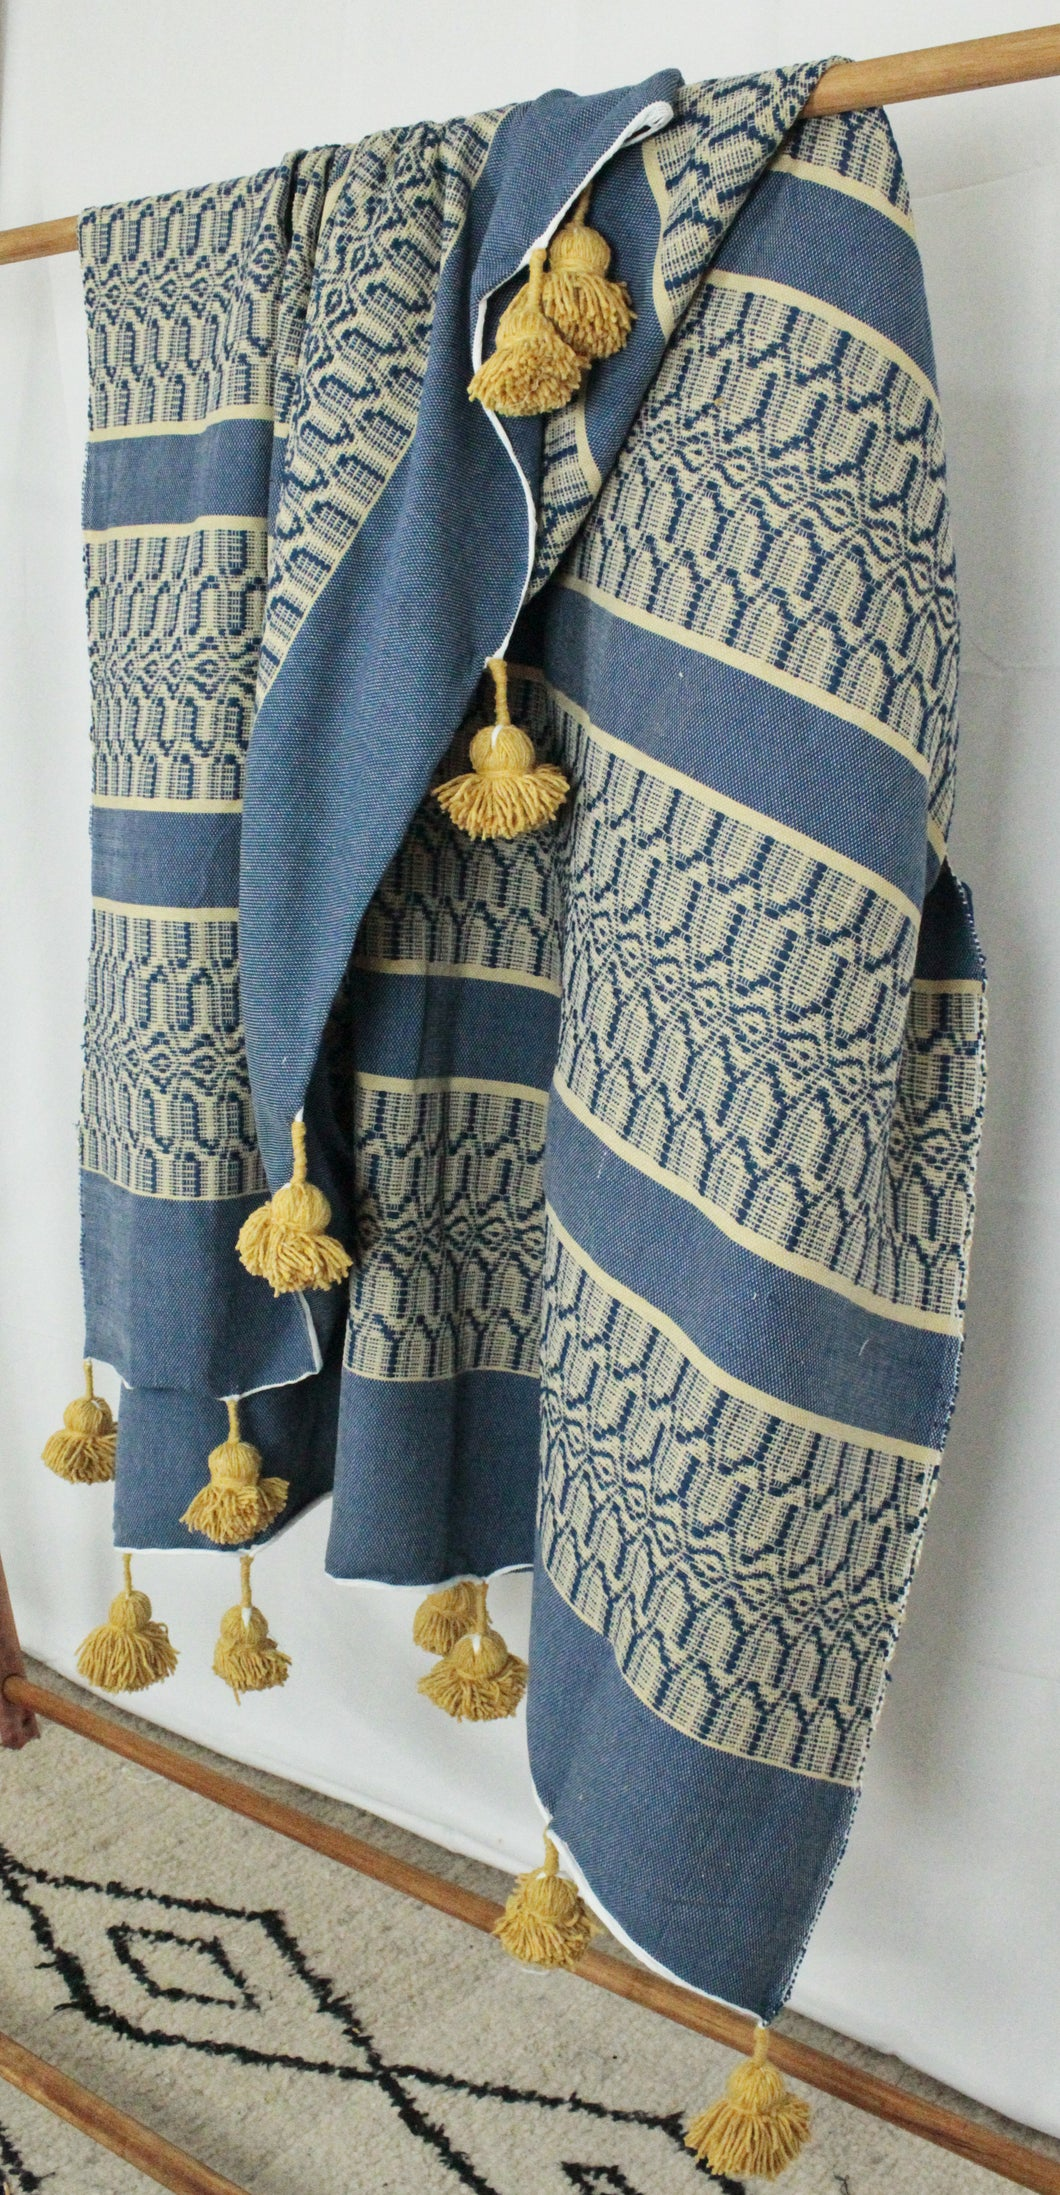 Wool Design Pom Pom Blanket- Blue and Tan with Mustard Pom Poms